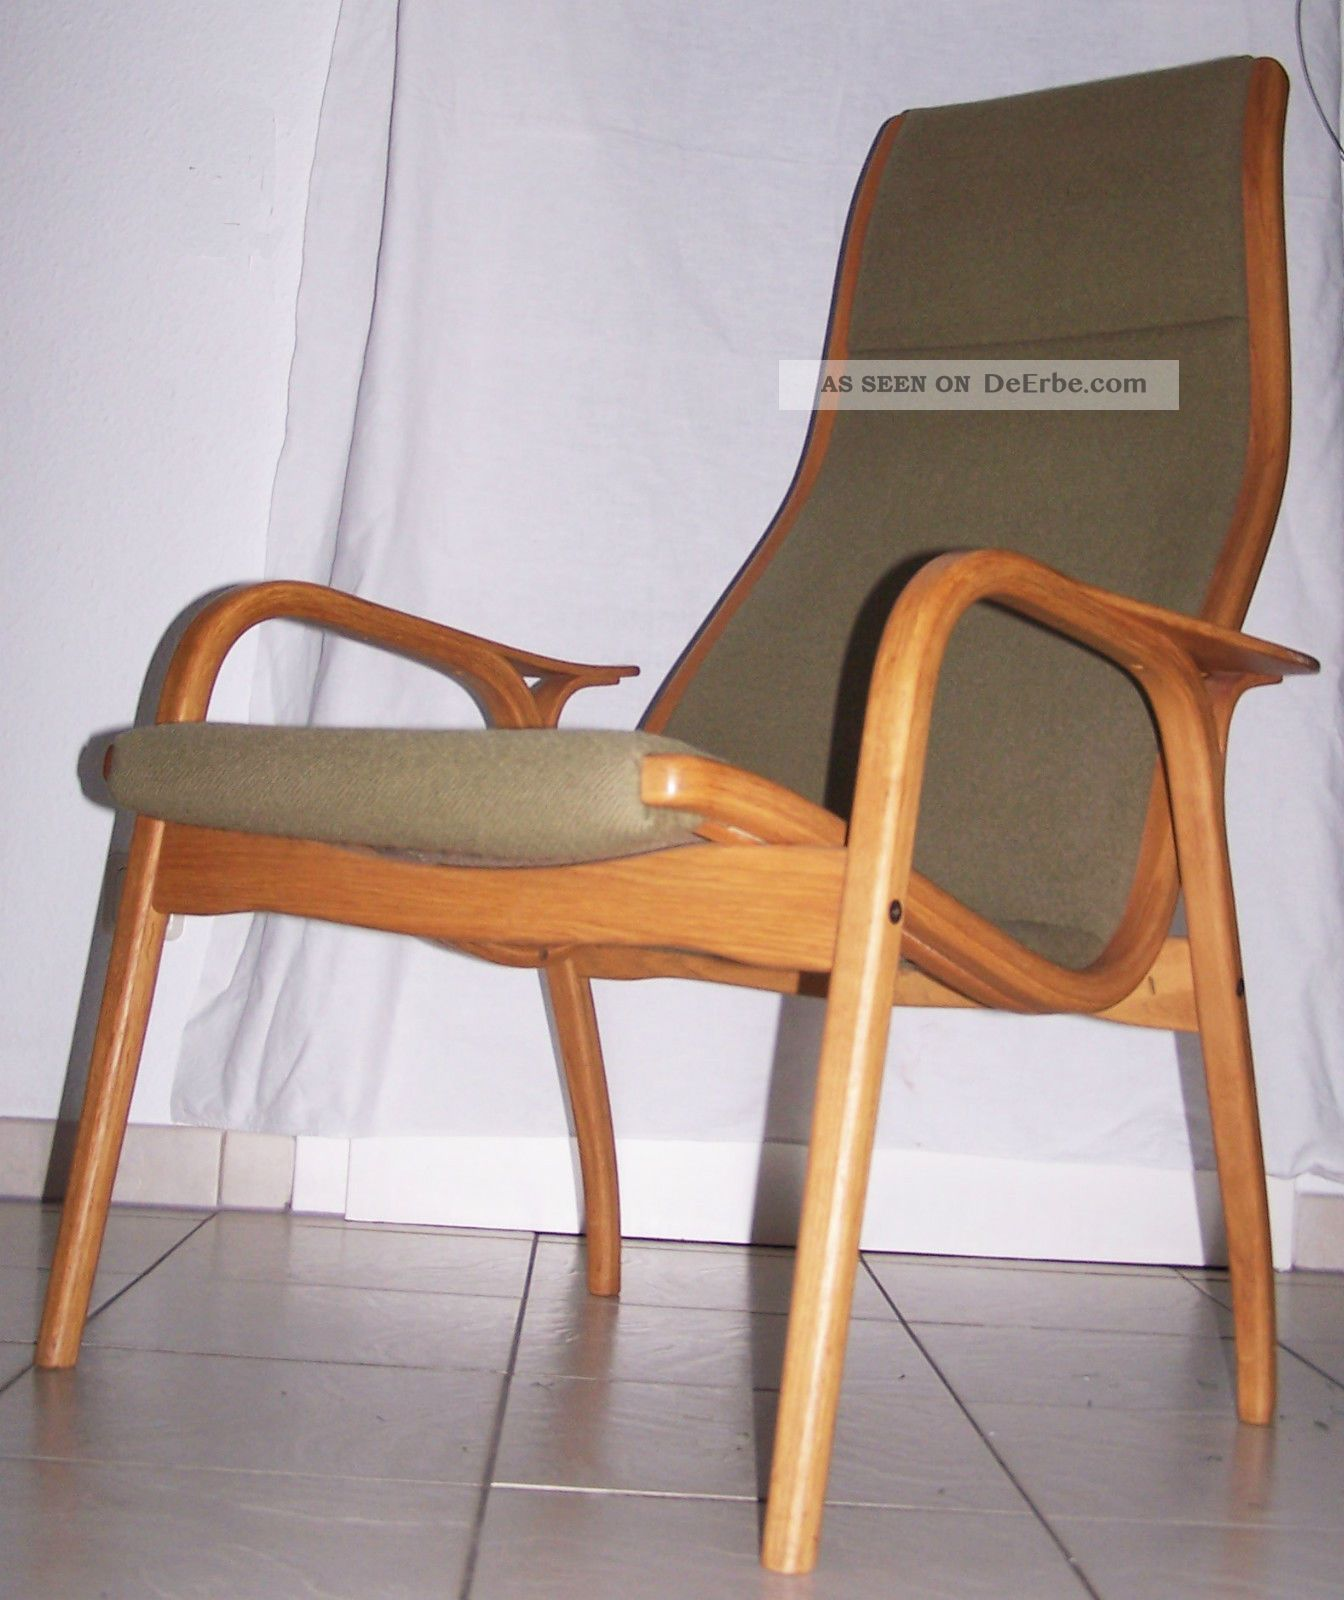 Swedese Sessel Lounge Chair Lamino Yngve EkstrÖm Swedese Sessel Oak 50er Jahre